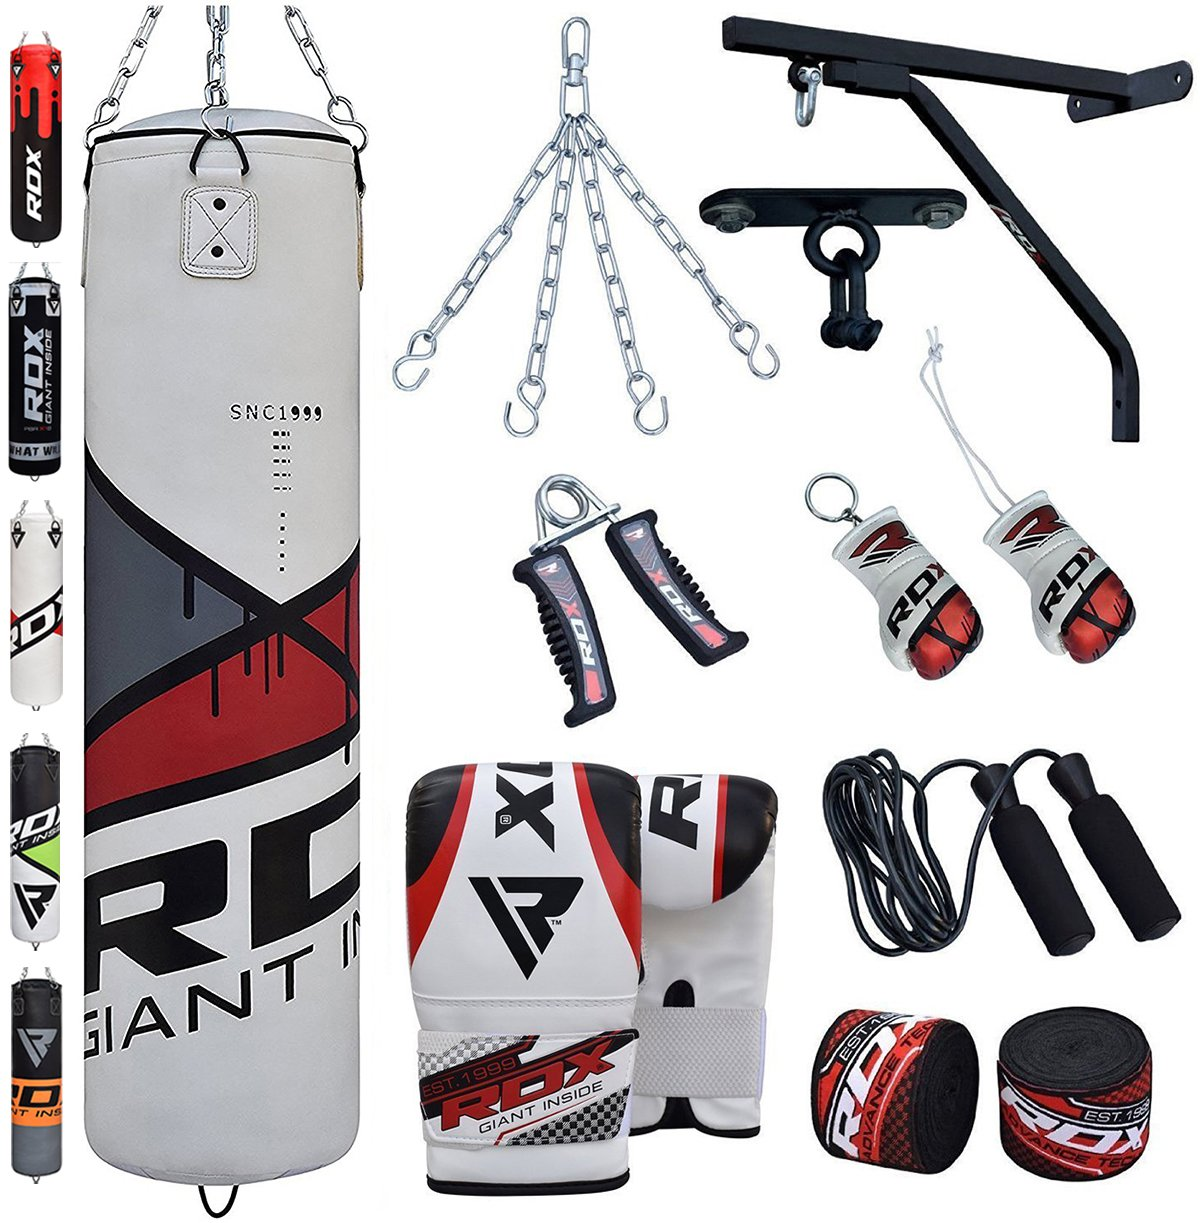 Punching bag, gloves, ropes and other gear